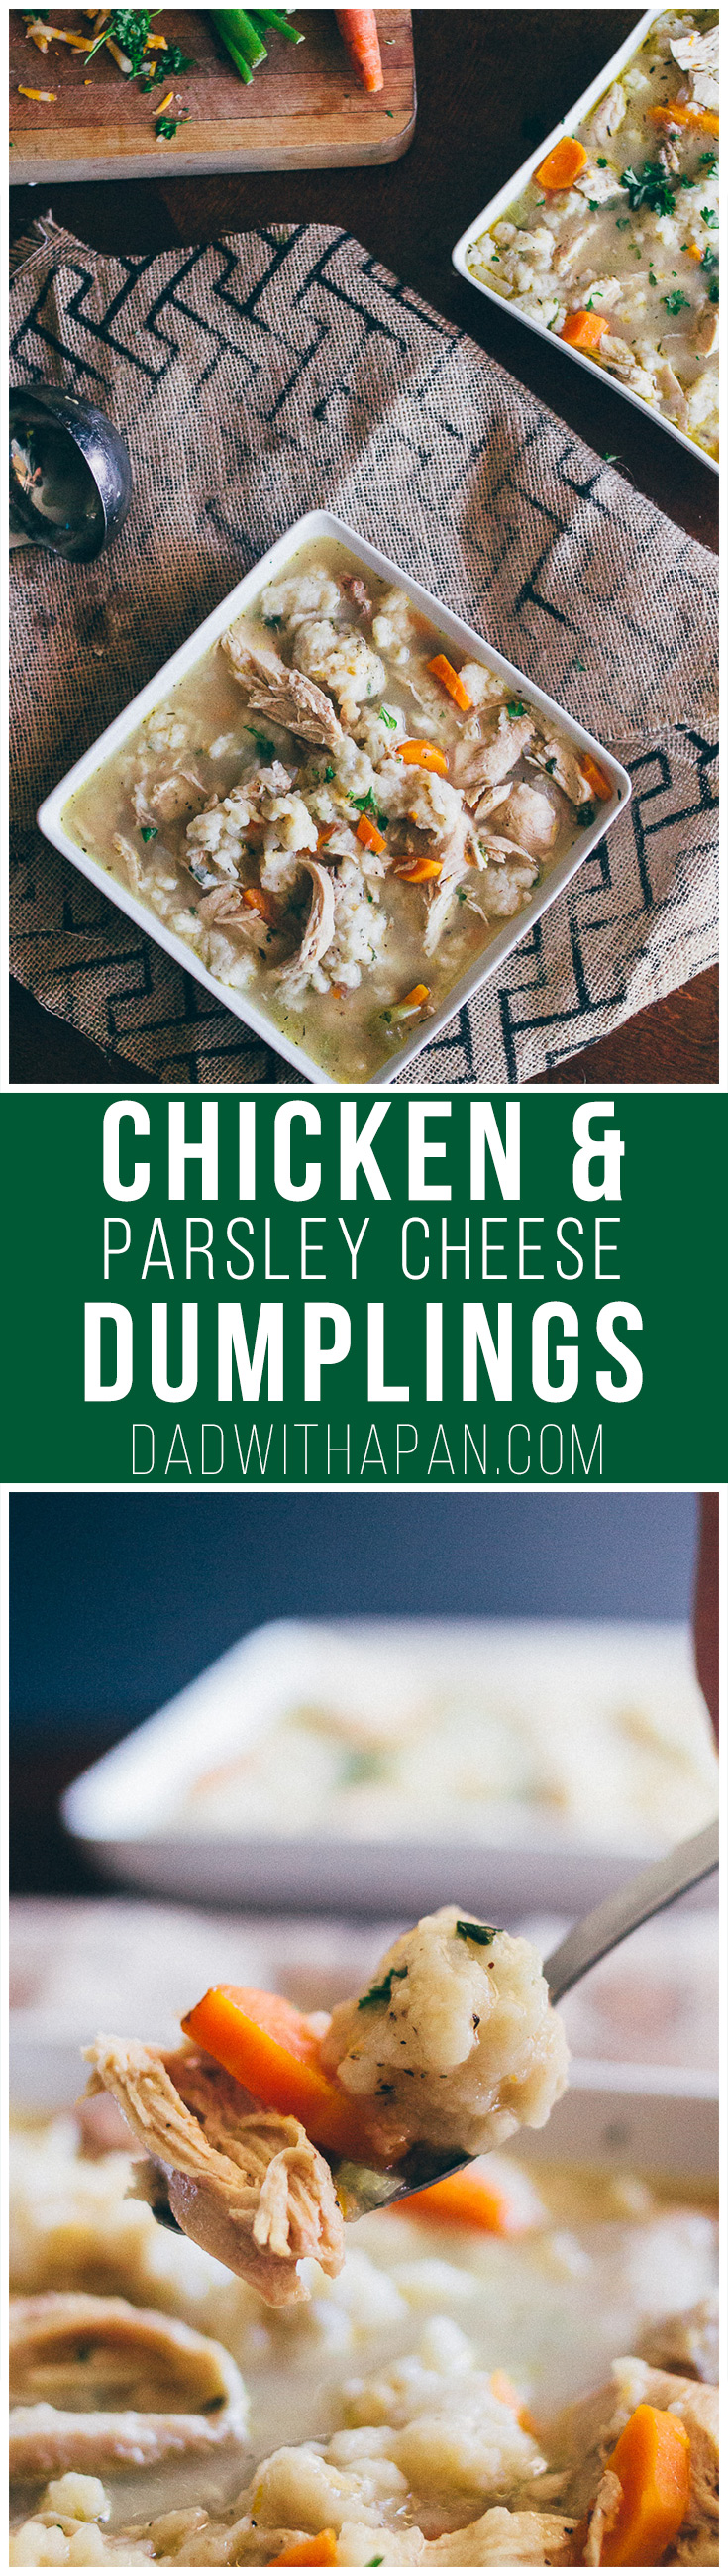 Chicken And Parsley Cheese Dumplings